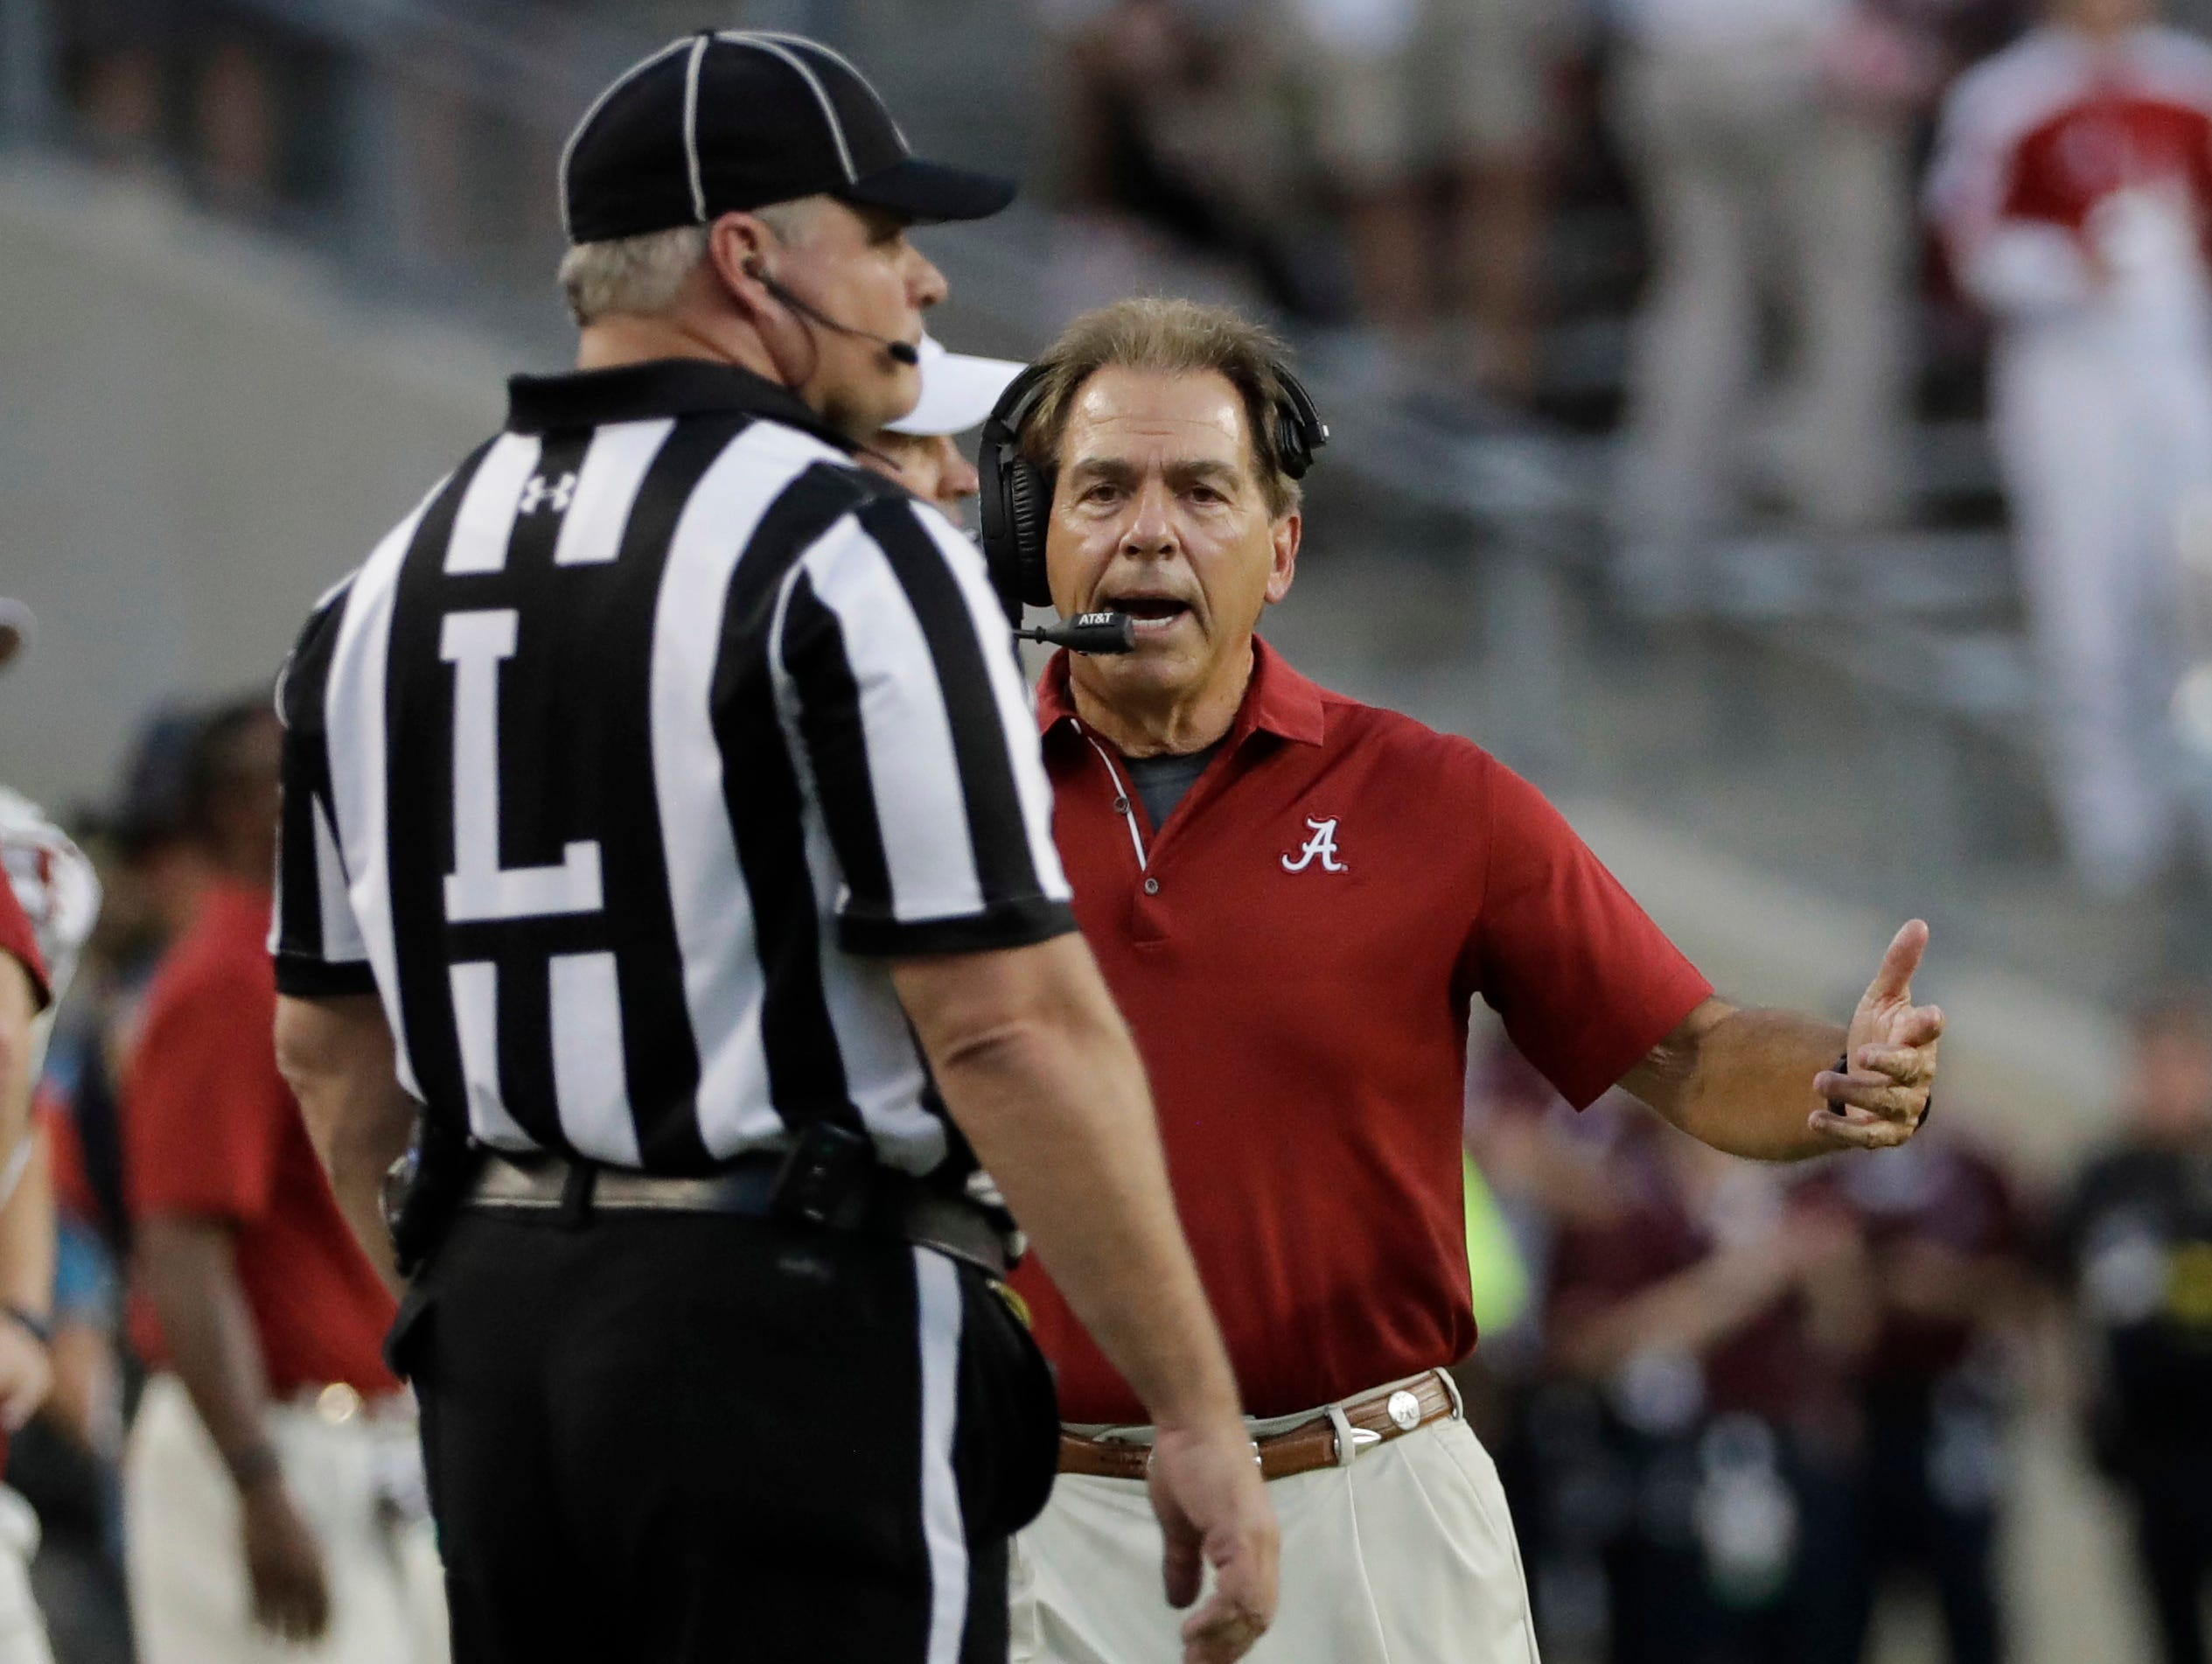 Alabama coach Nick Saban yells to an official during the first quarter of an NCAA college football game against Texas A&M Saturday, Oct. 7, 2017, in College Station, Texas.